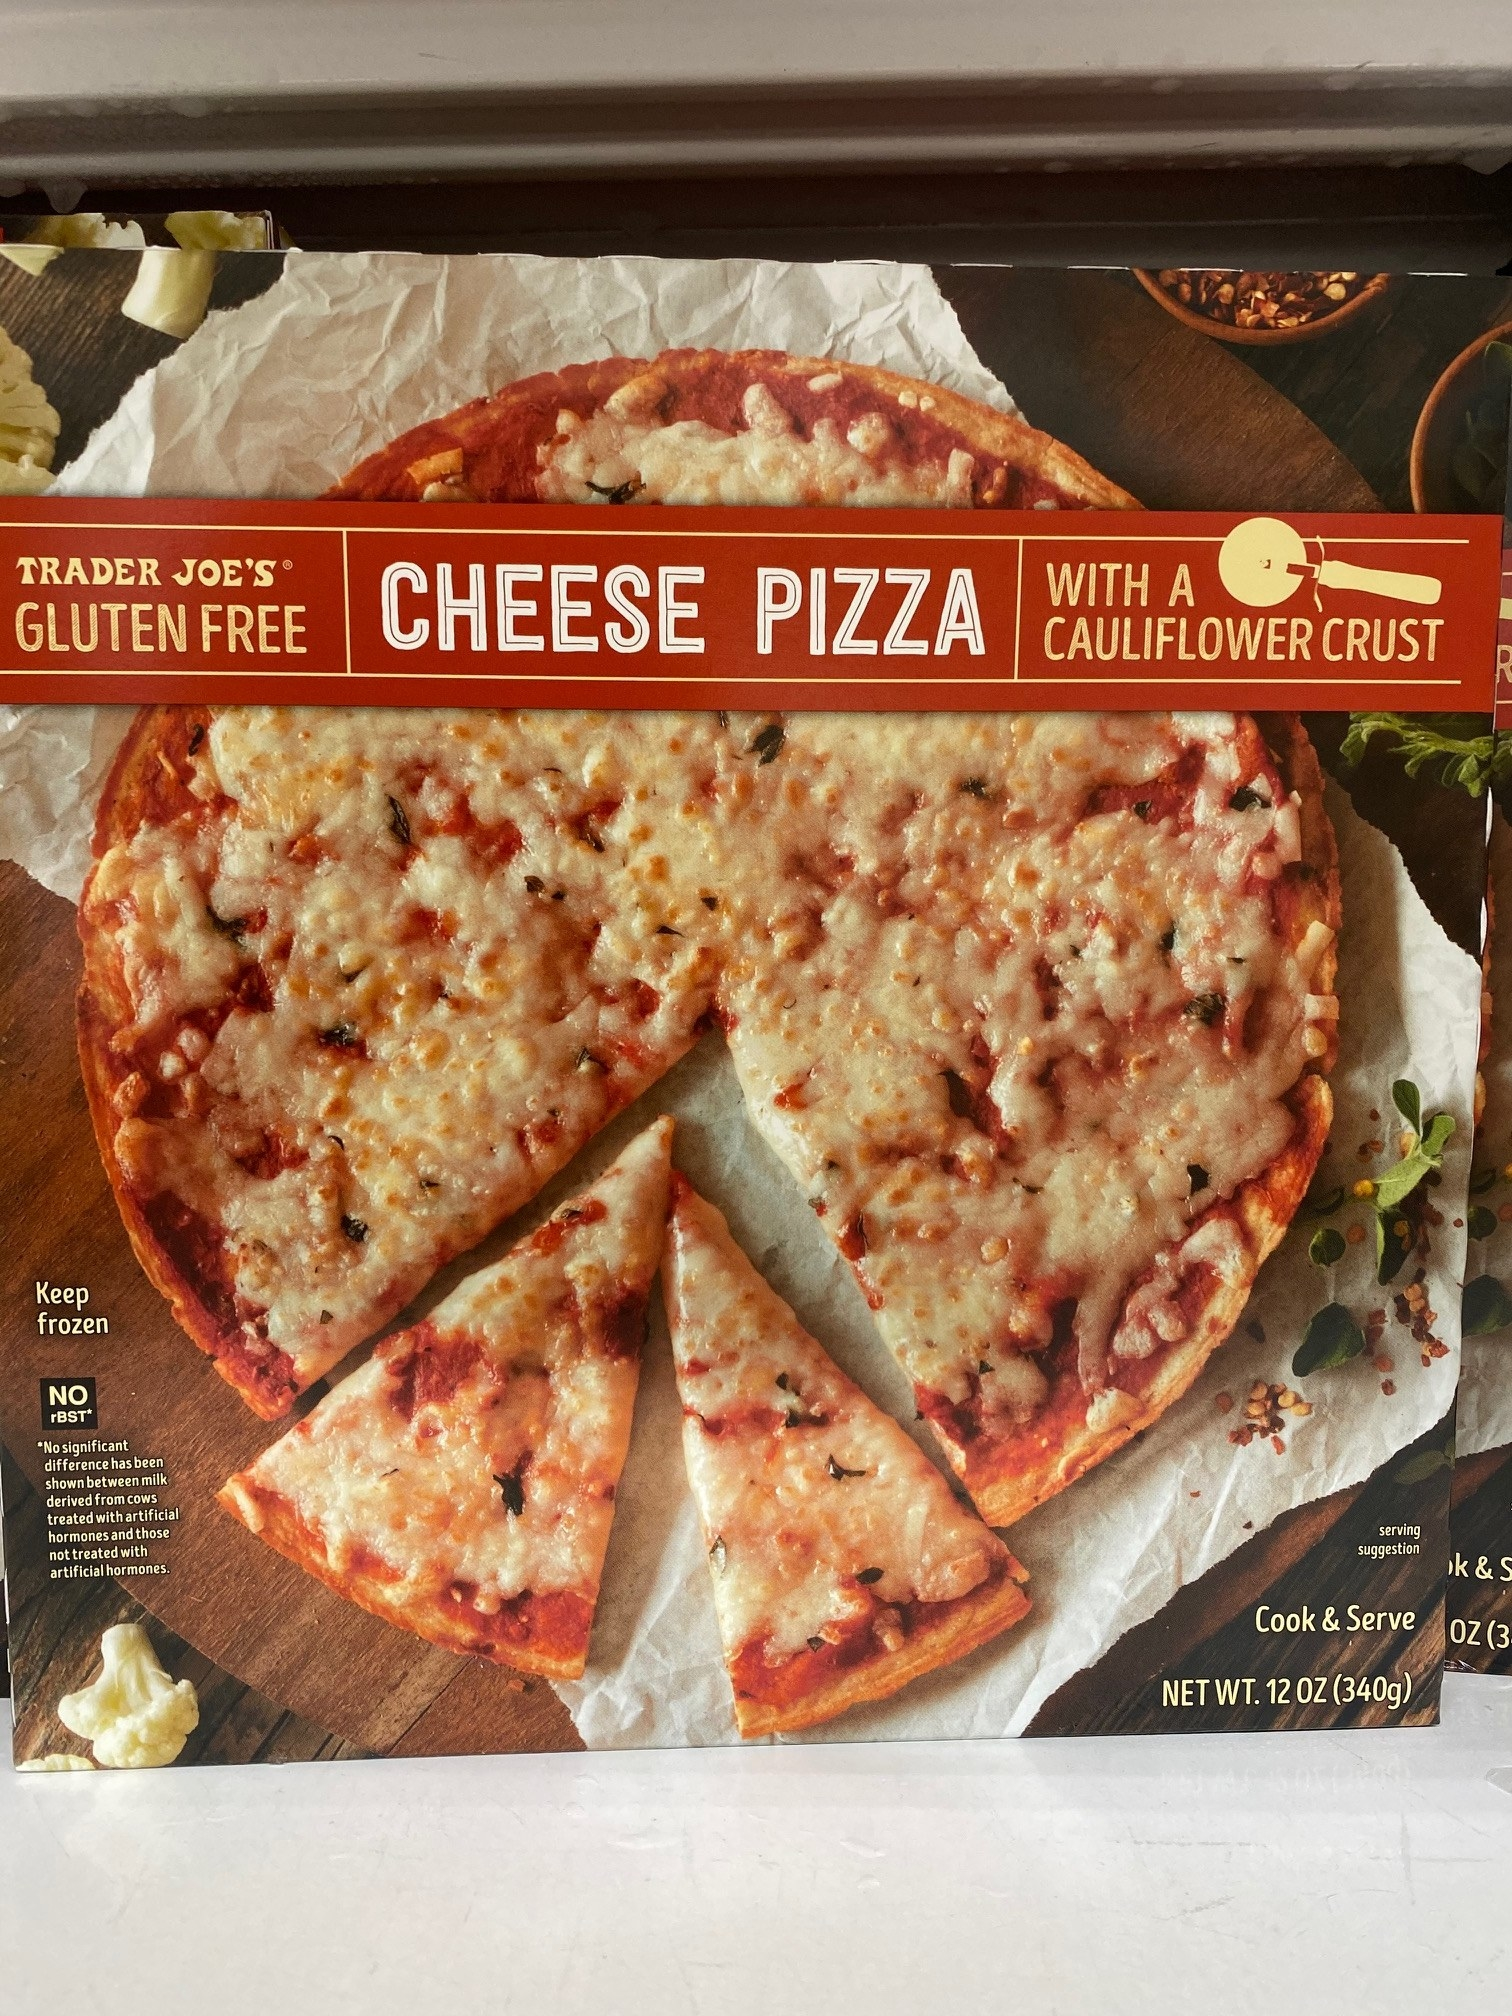 A box of frozen cheese pizza with cauliflower crust from Trader Joe's.